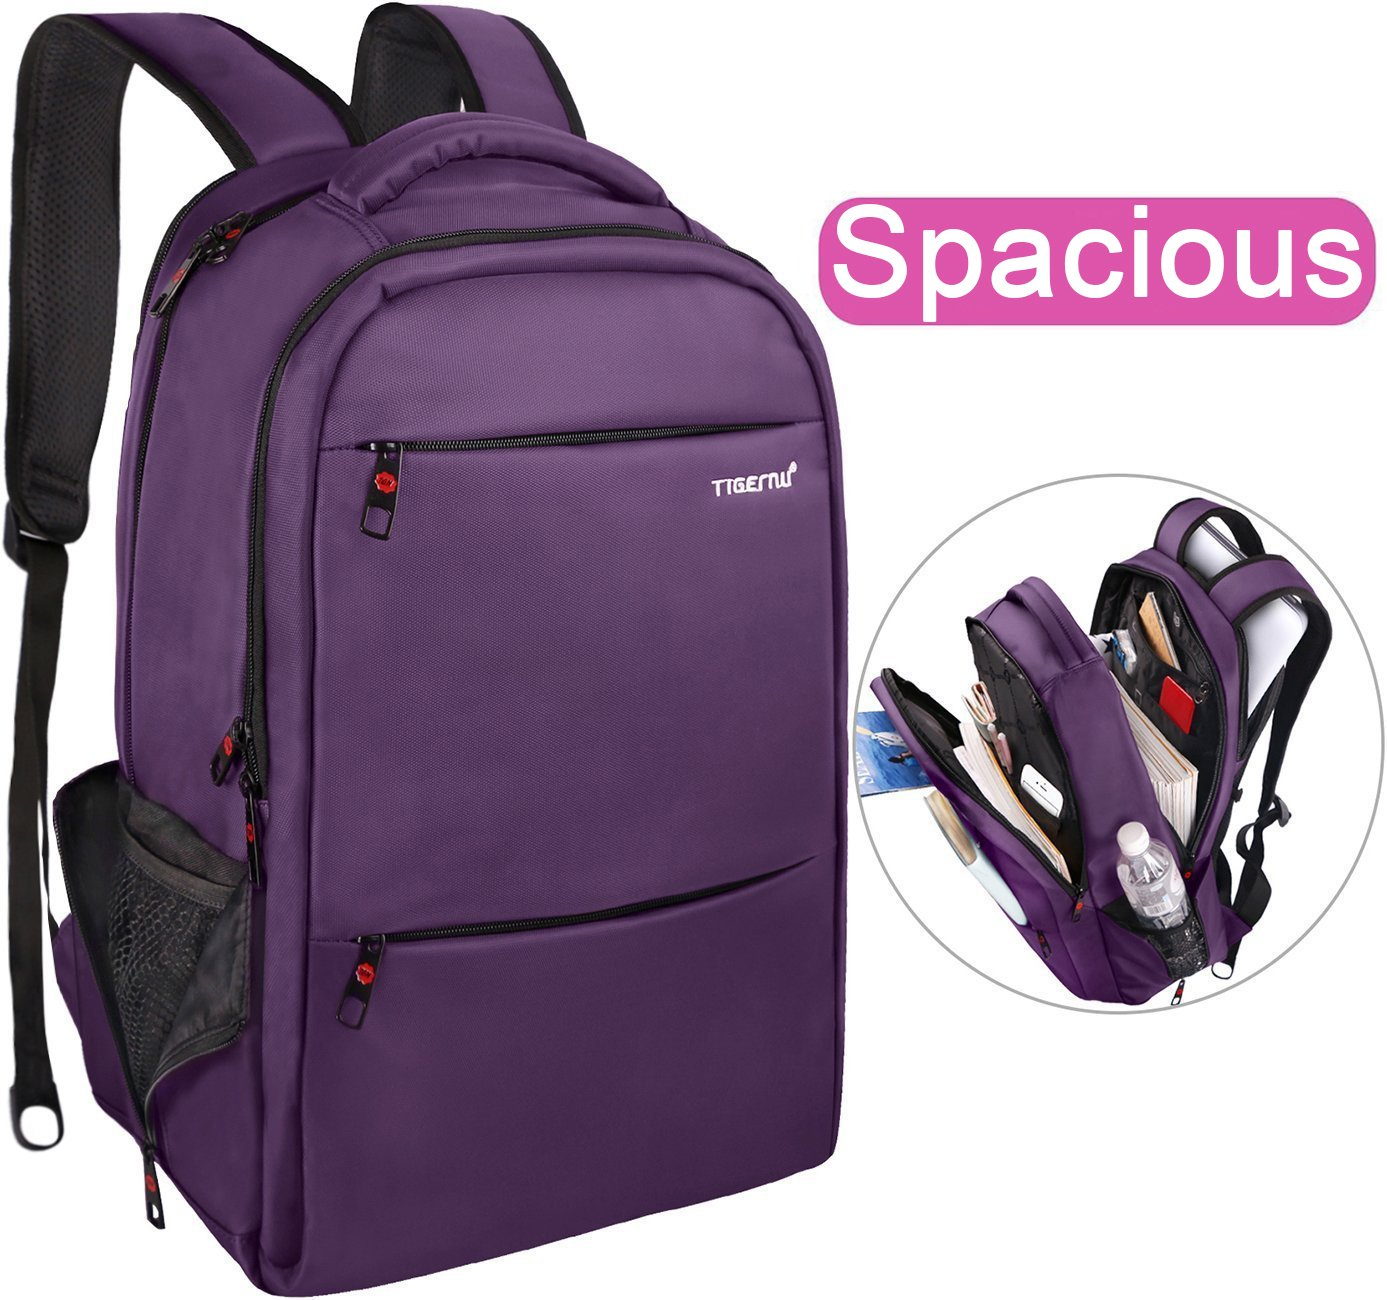 LAPACKER 15.6-17 inch Water Resistant Business Computer Backpacks for Women Mens Laptop Travel Bag Lightweight College students Notebook Laptop Backpack - Purple by LAPACKER